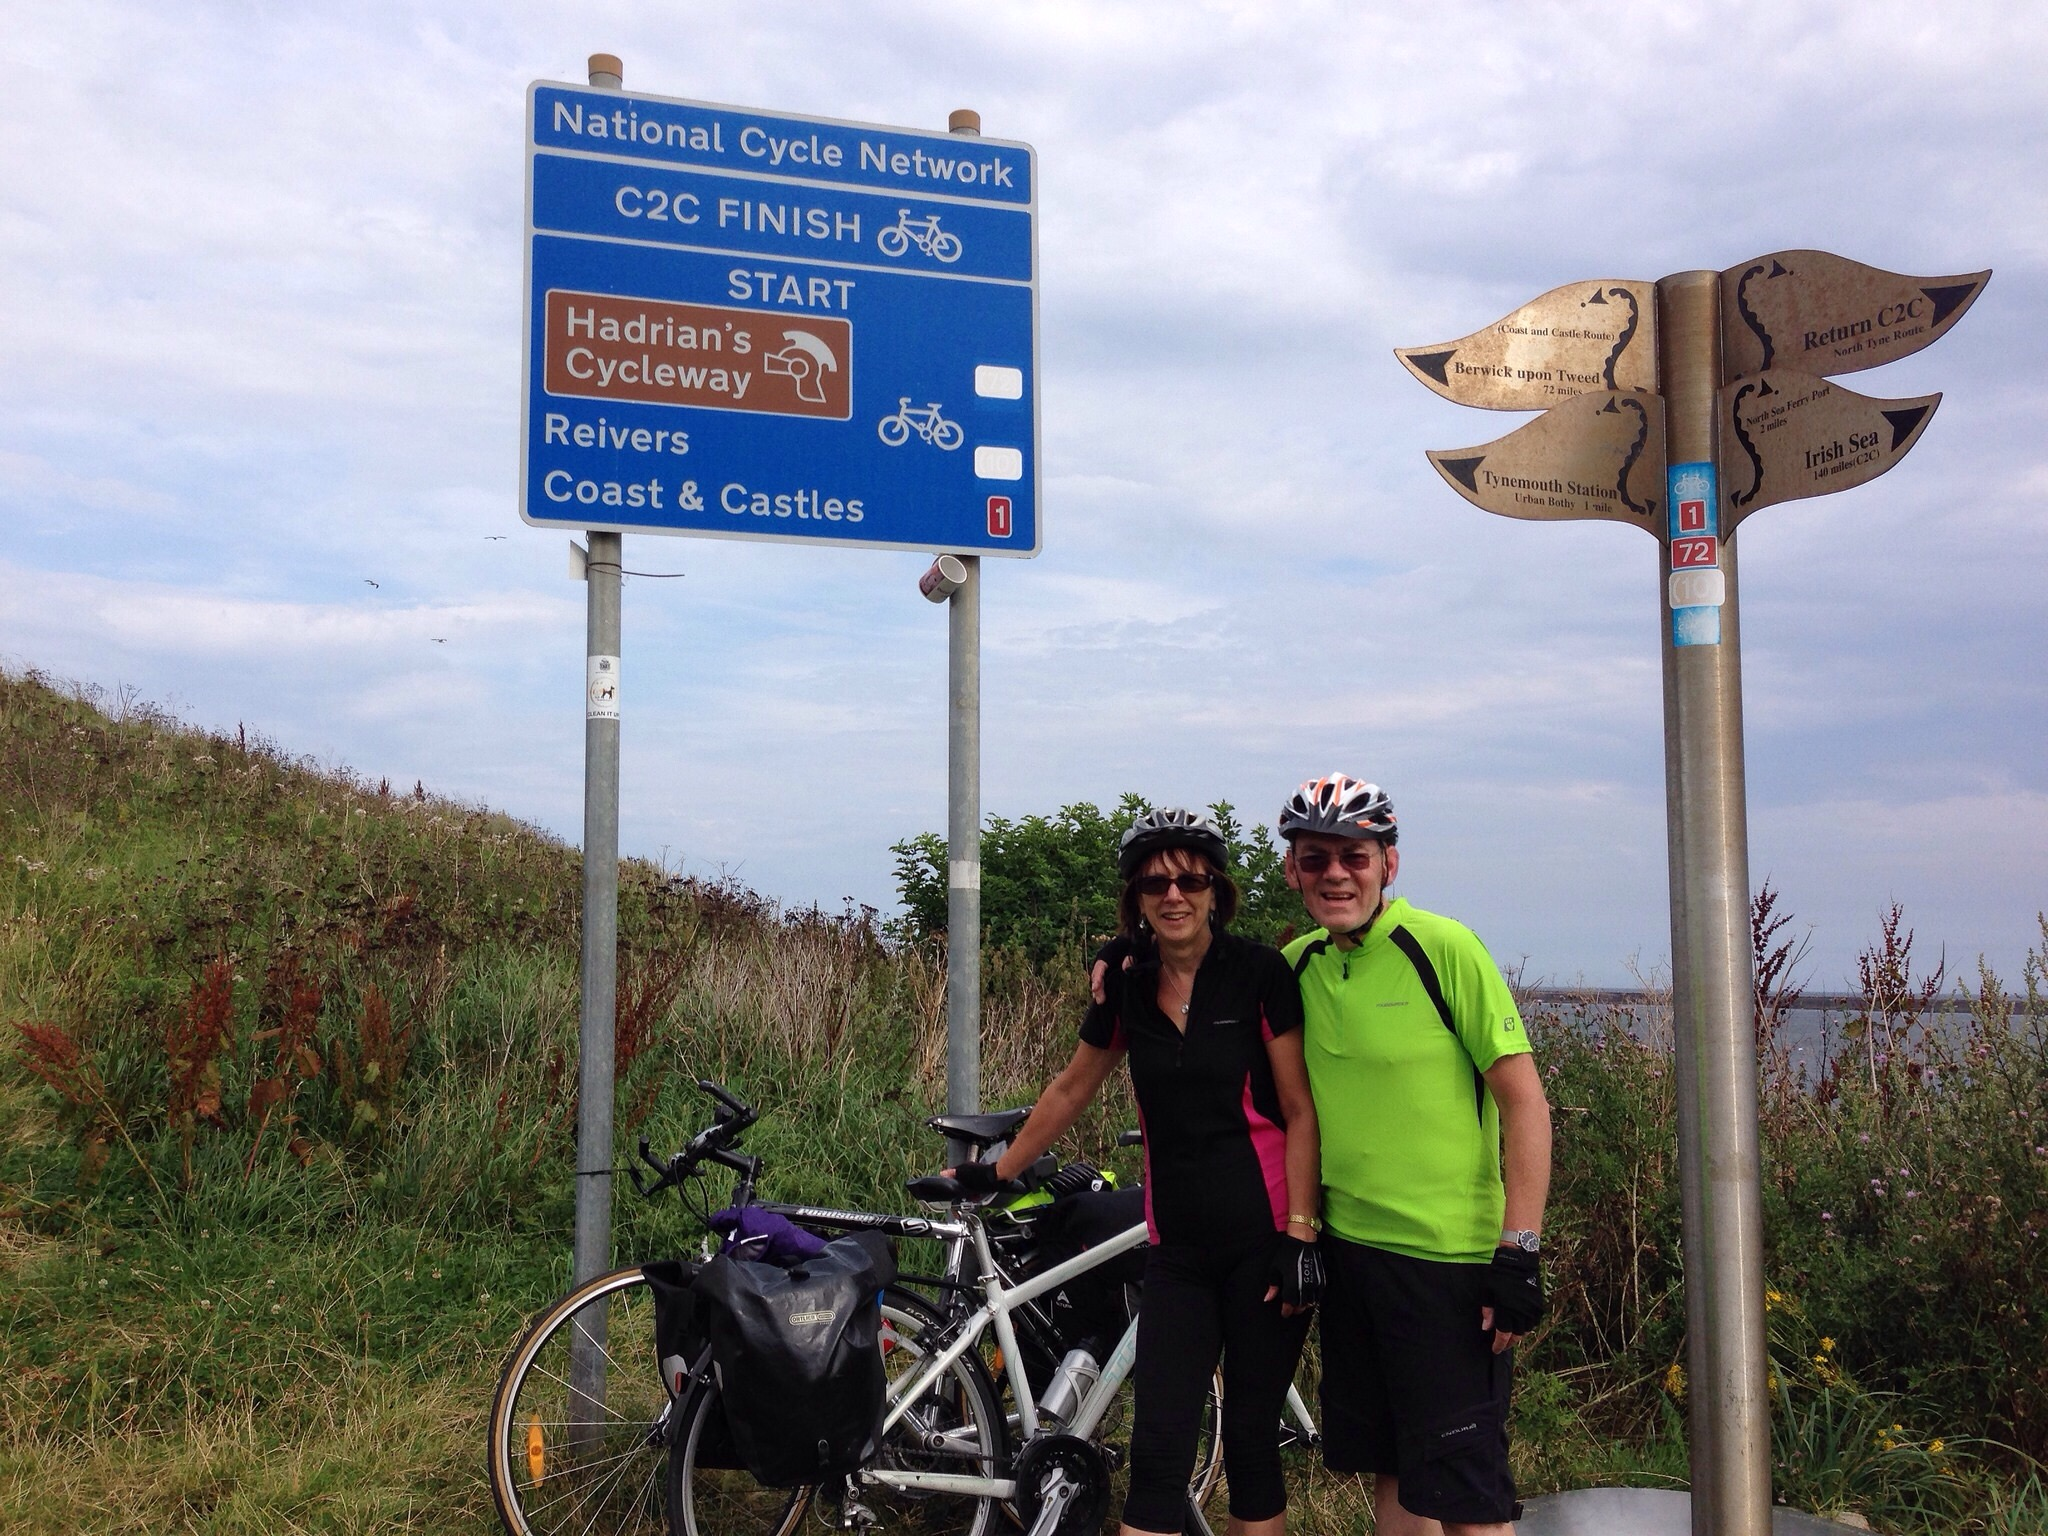 Barrie and Joan at the end/start of the Hadrian's Wall Cycleway